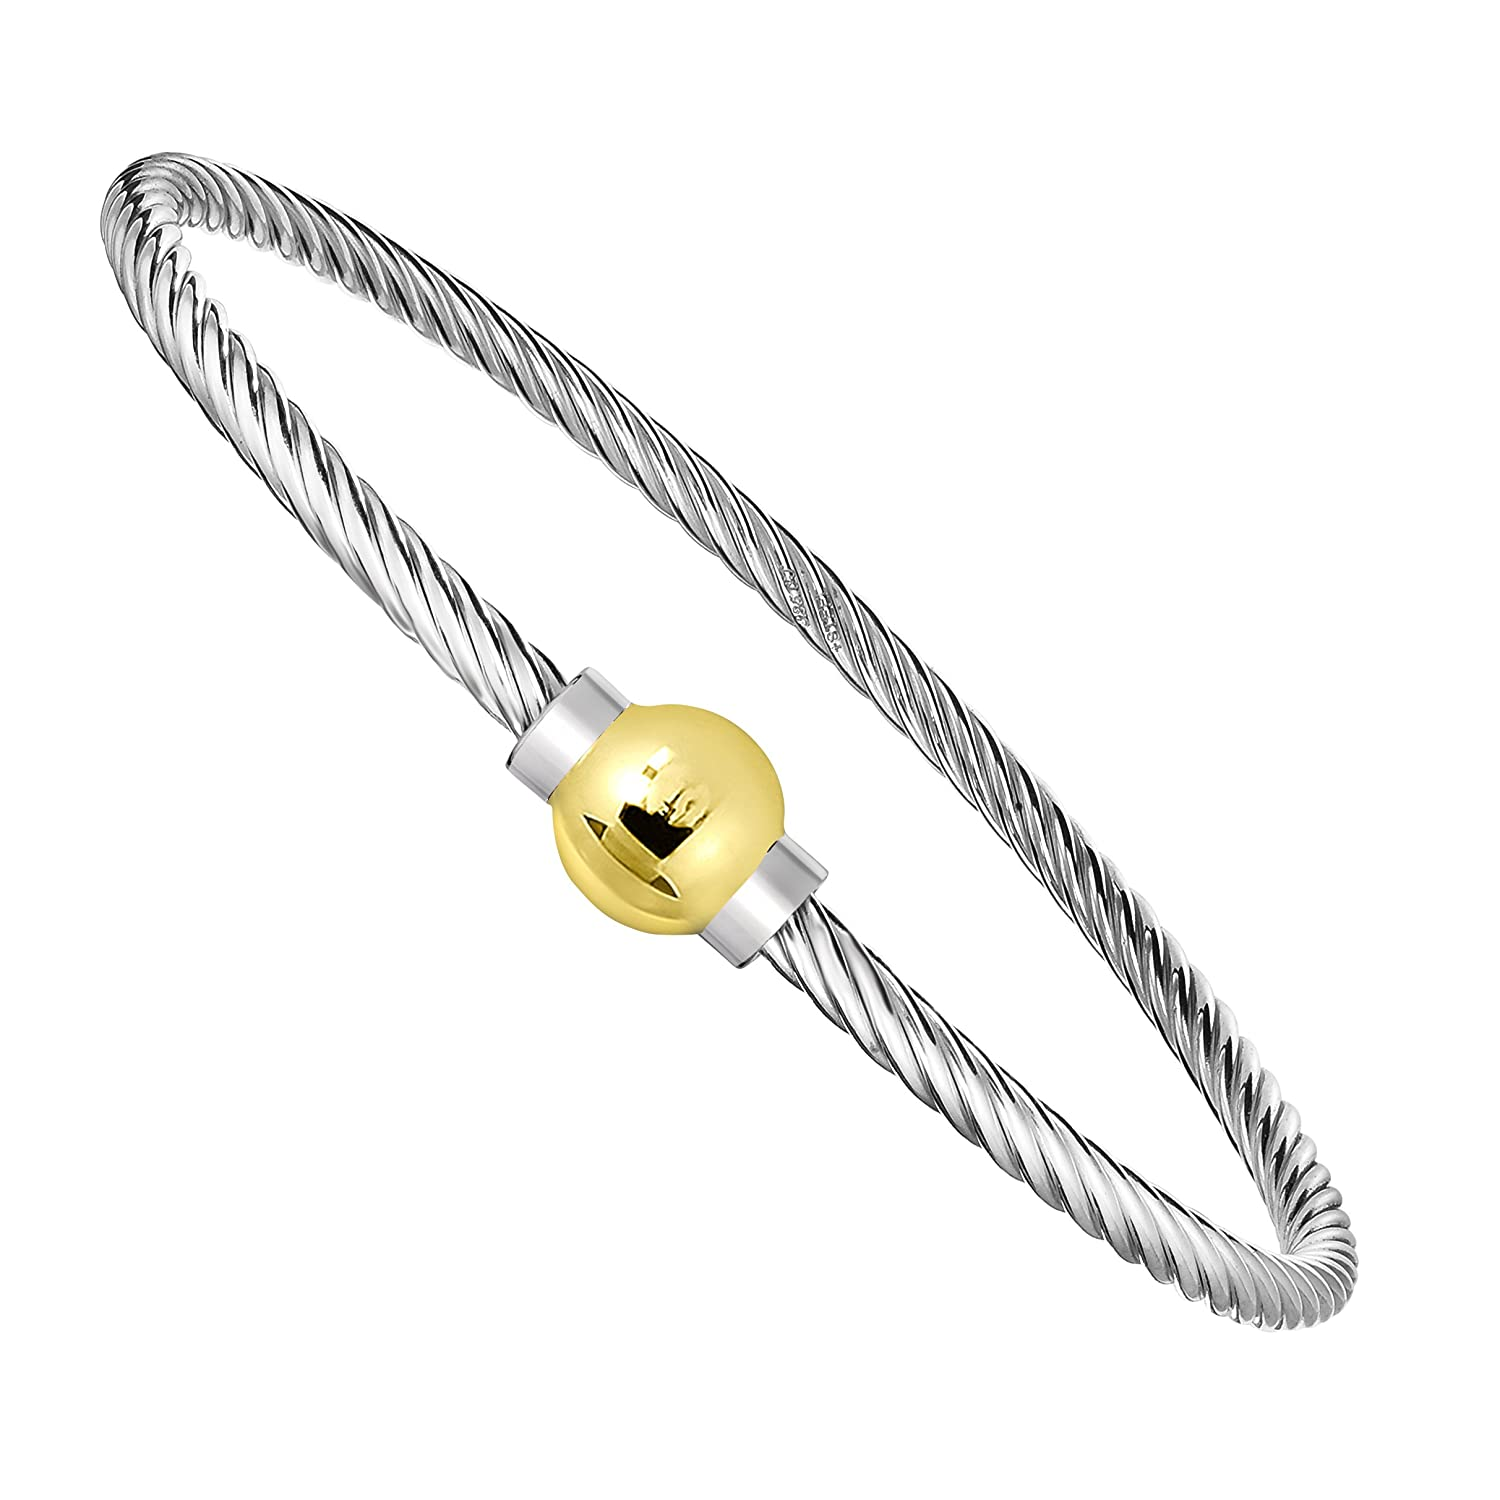 8720b2f21e5 Amazon.com  Unique Royal Jewelry Ocean Side Bracelet 925 Sterling Silver  and 14K Solid Gold Ball Screw Twisted Bangle Bracelet. (5.5)  Jewelry